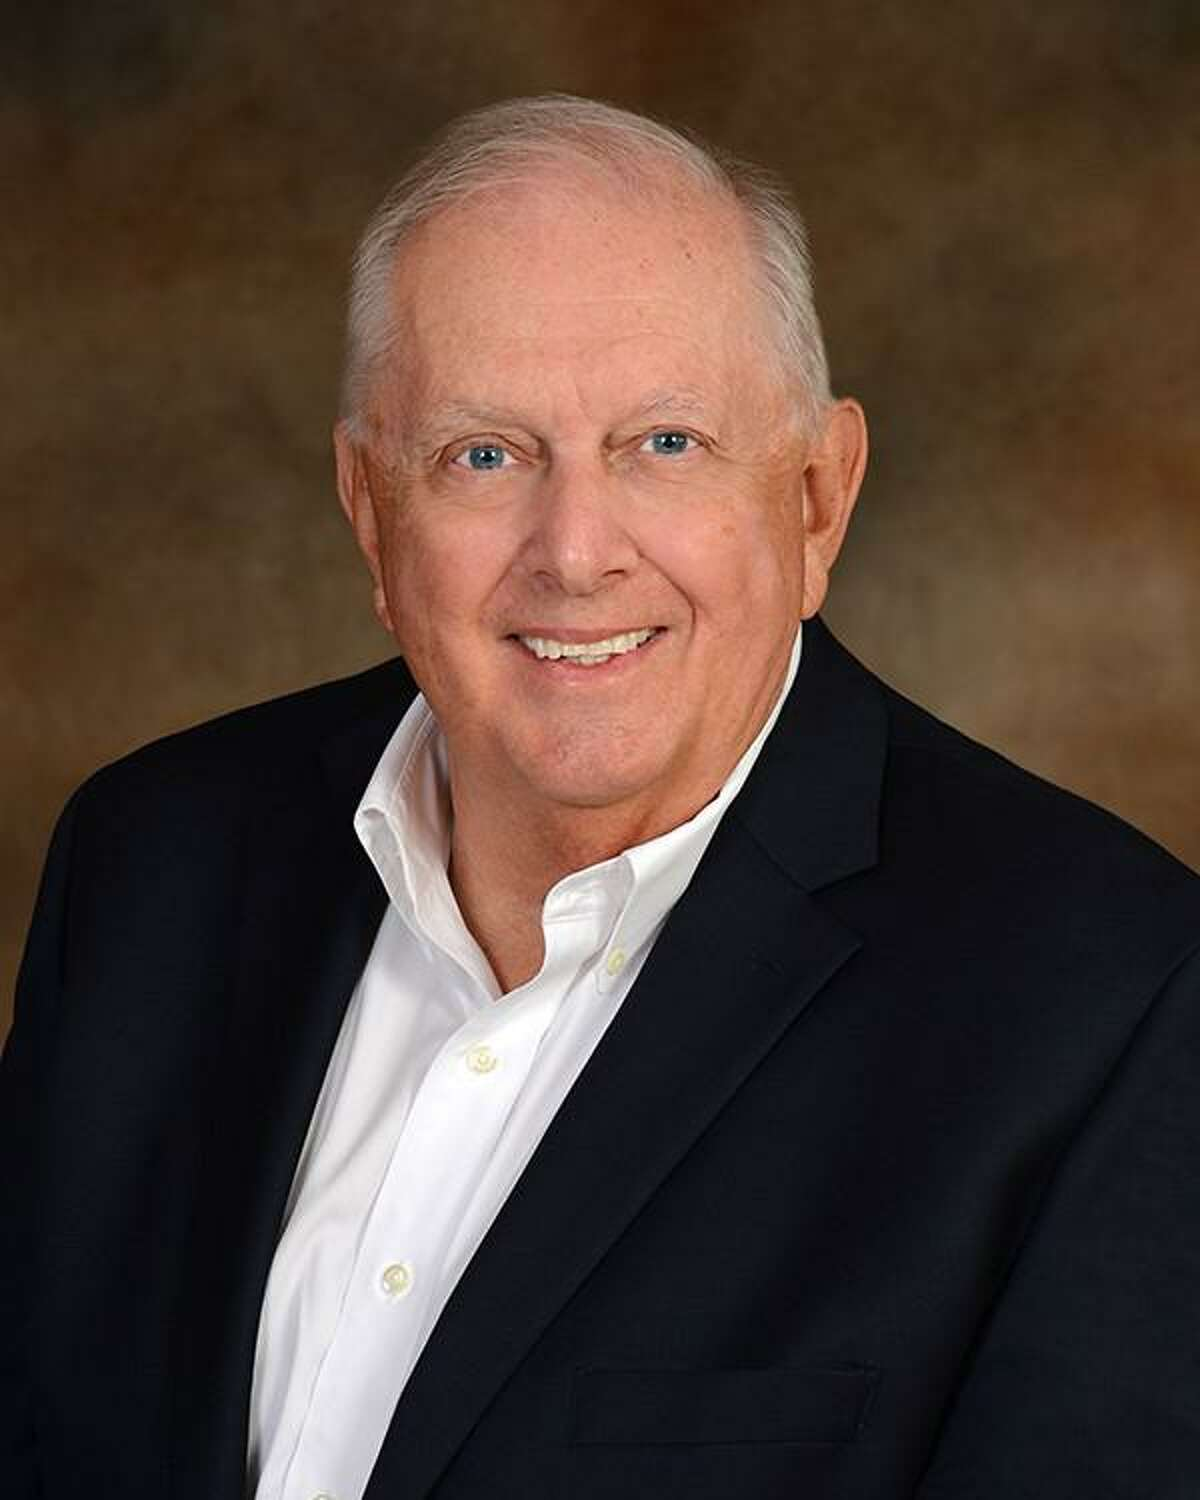 Bruce Rieser, incumbent on The Woodlands Township Board of Directors, is seeking re-election to his third term in office.